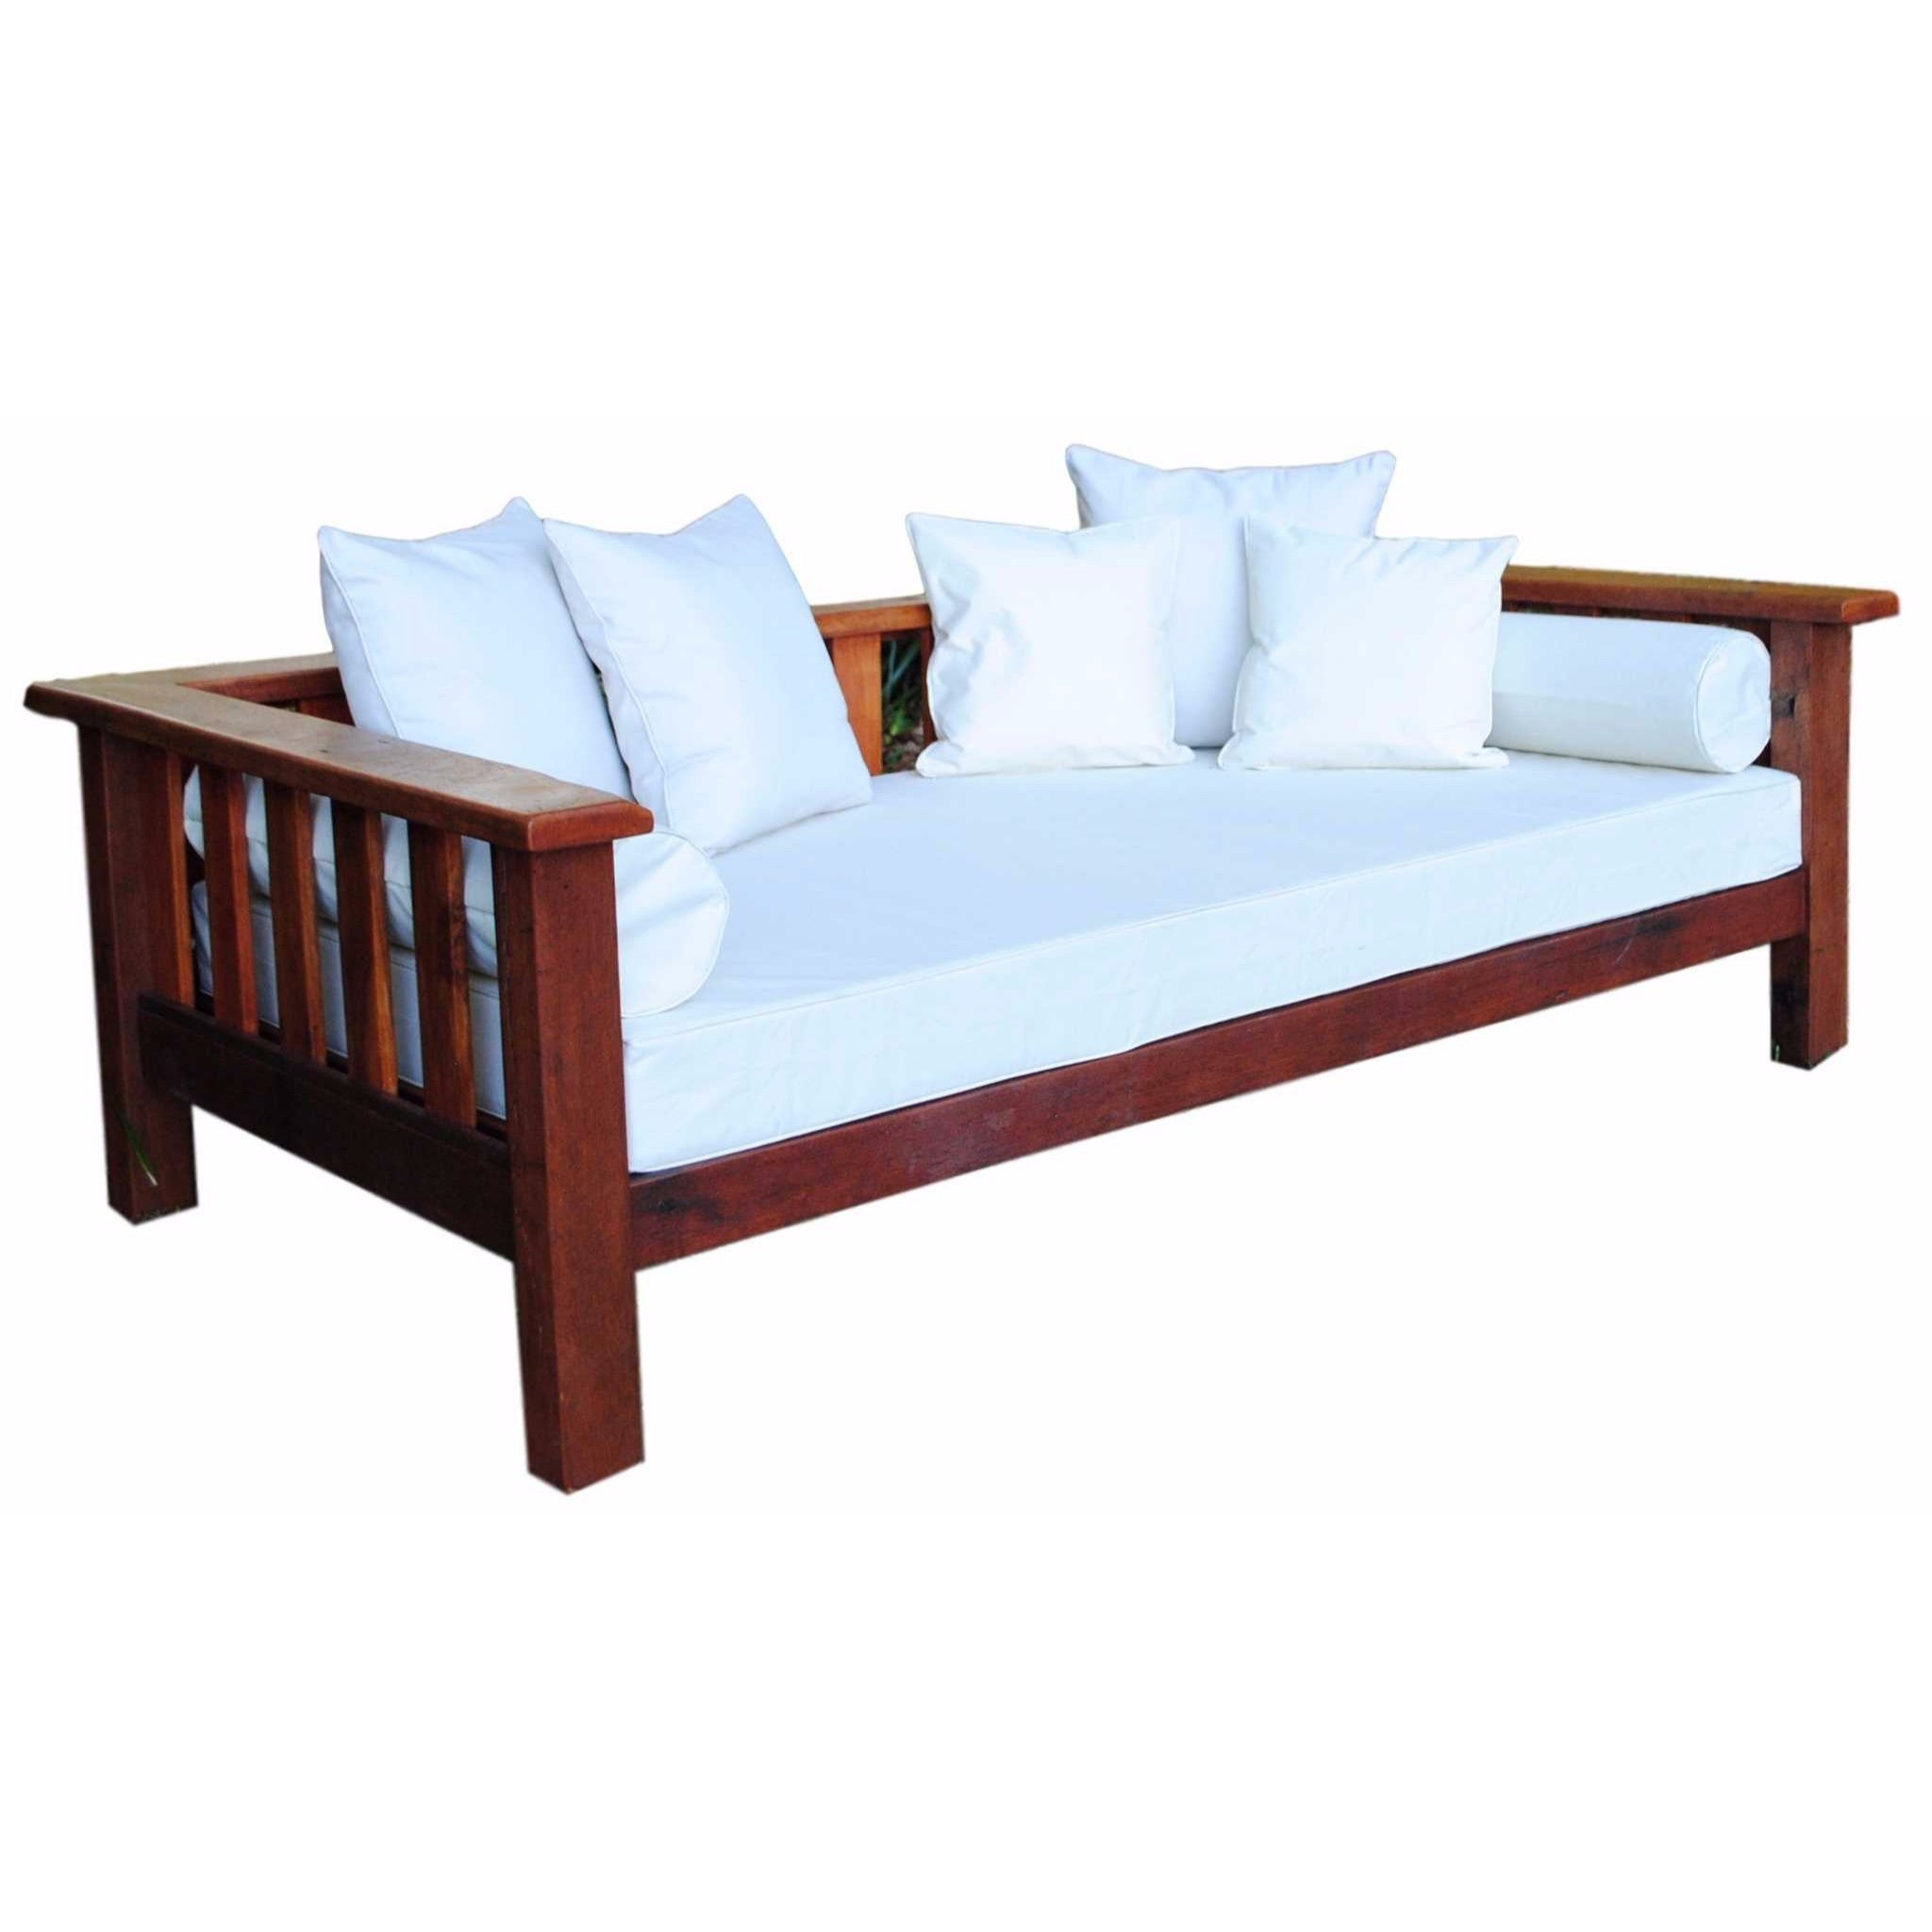 classic recycled hardwood daybed byron channon market uki